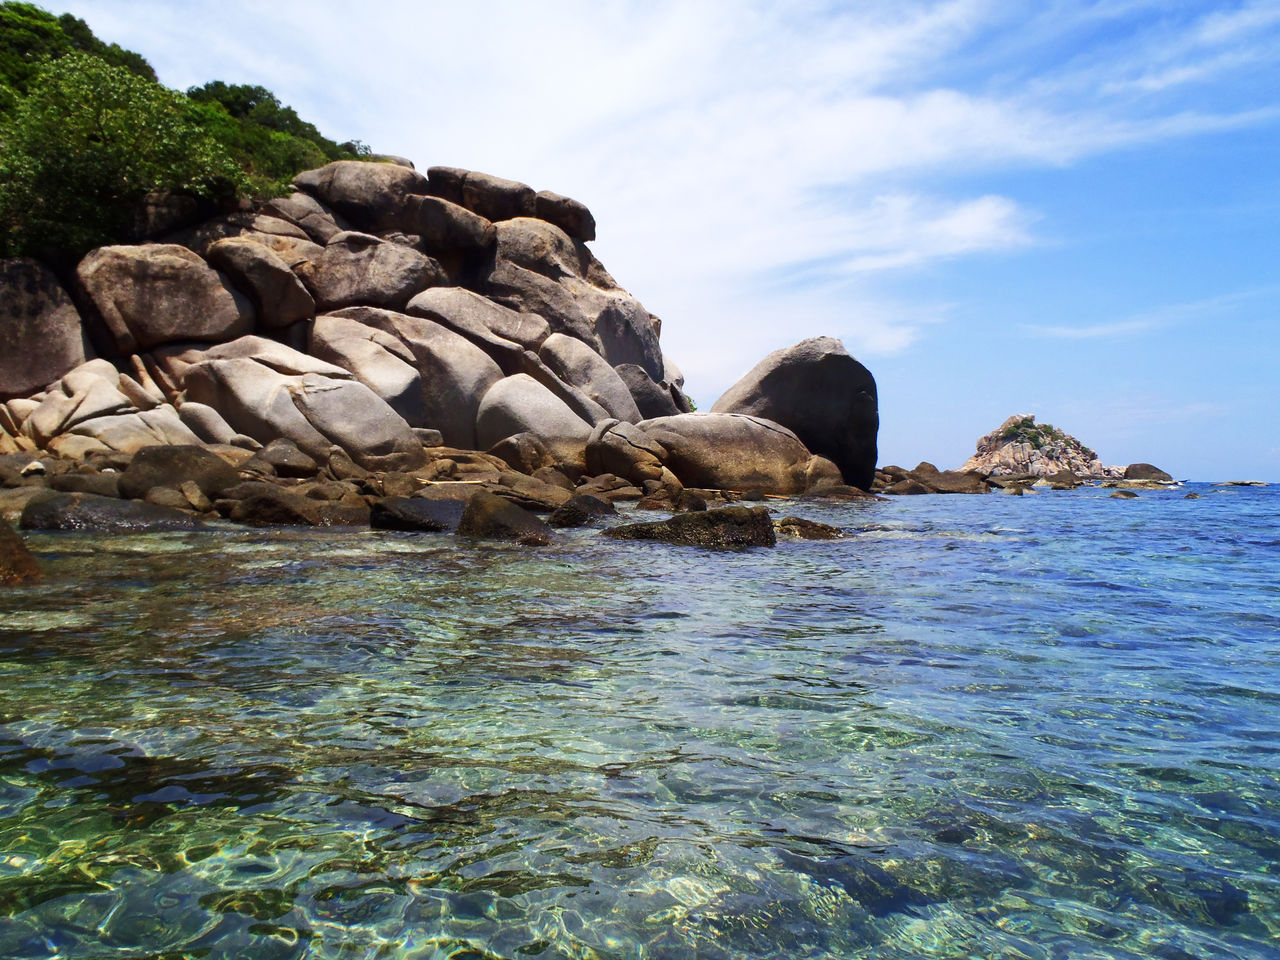 water, rock, sea, solid, rock - object, beauty in nature, sky, waterfront, scenics - nature, nature, tranquility, tranquil scene, day, no people, land, beach, non-urban scene, rock formation, idyllic, outdoors, marine